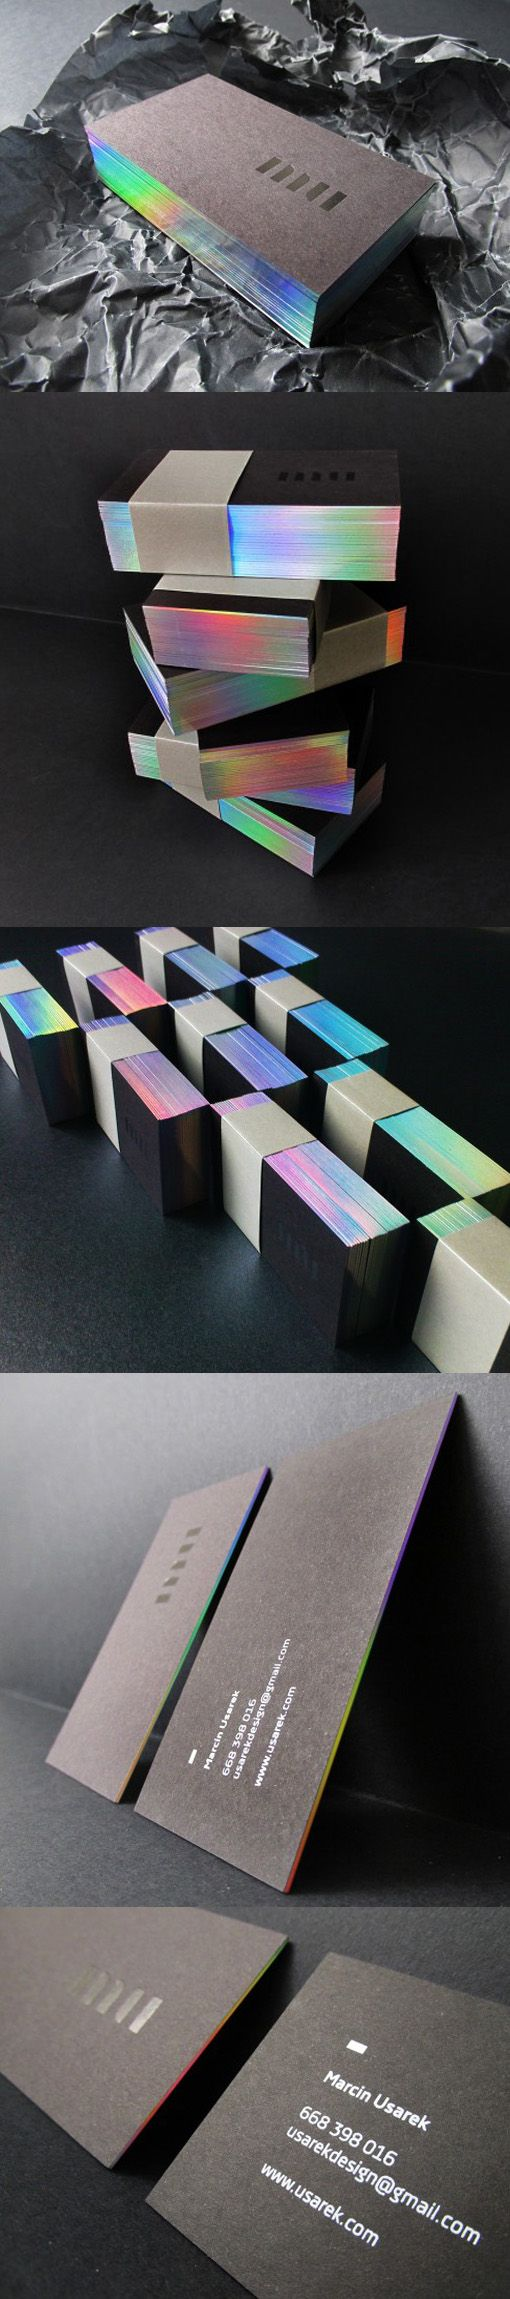 Beautiful Holographic Foil Edge Painted Black Business Card Design                                                                                                                                                                                 More